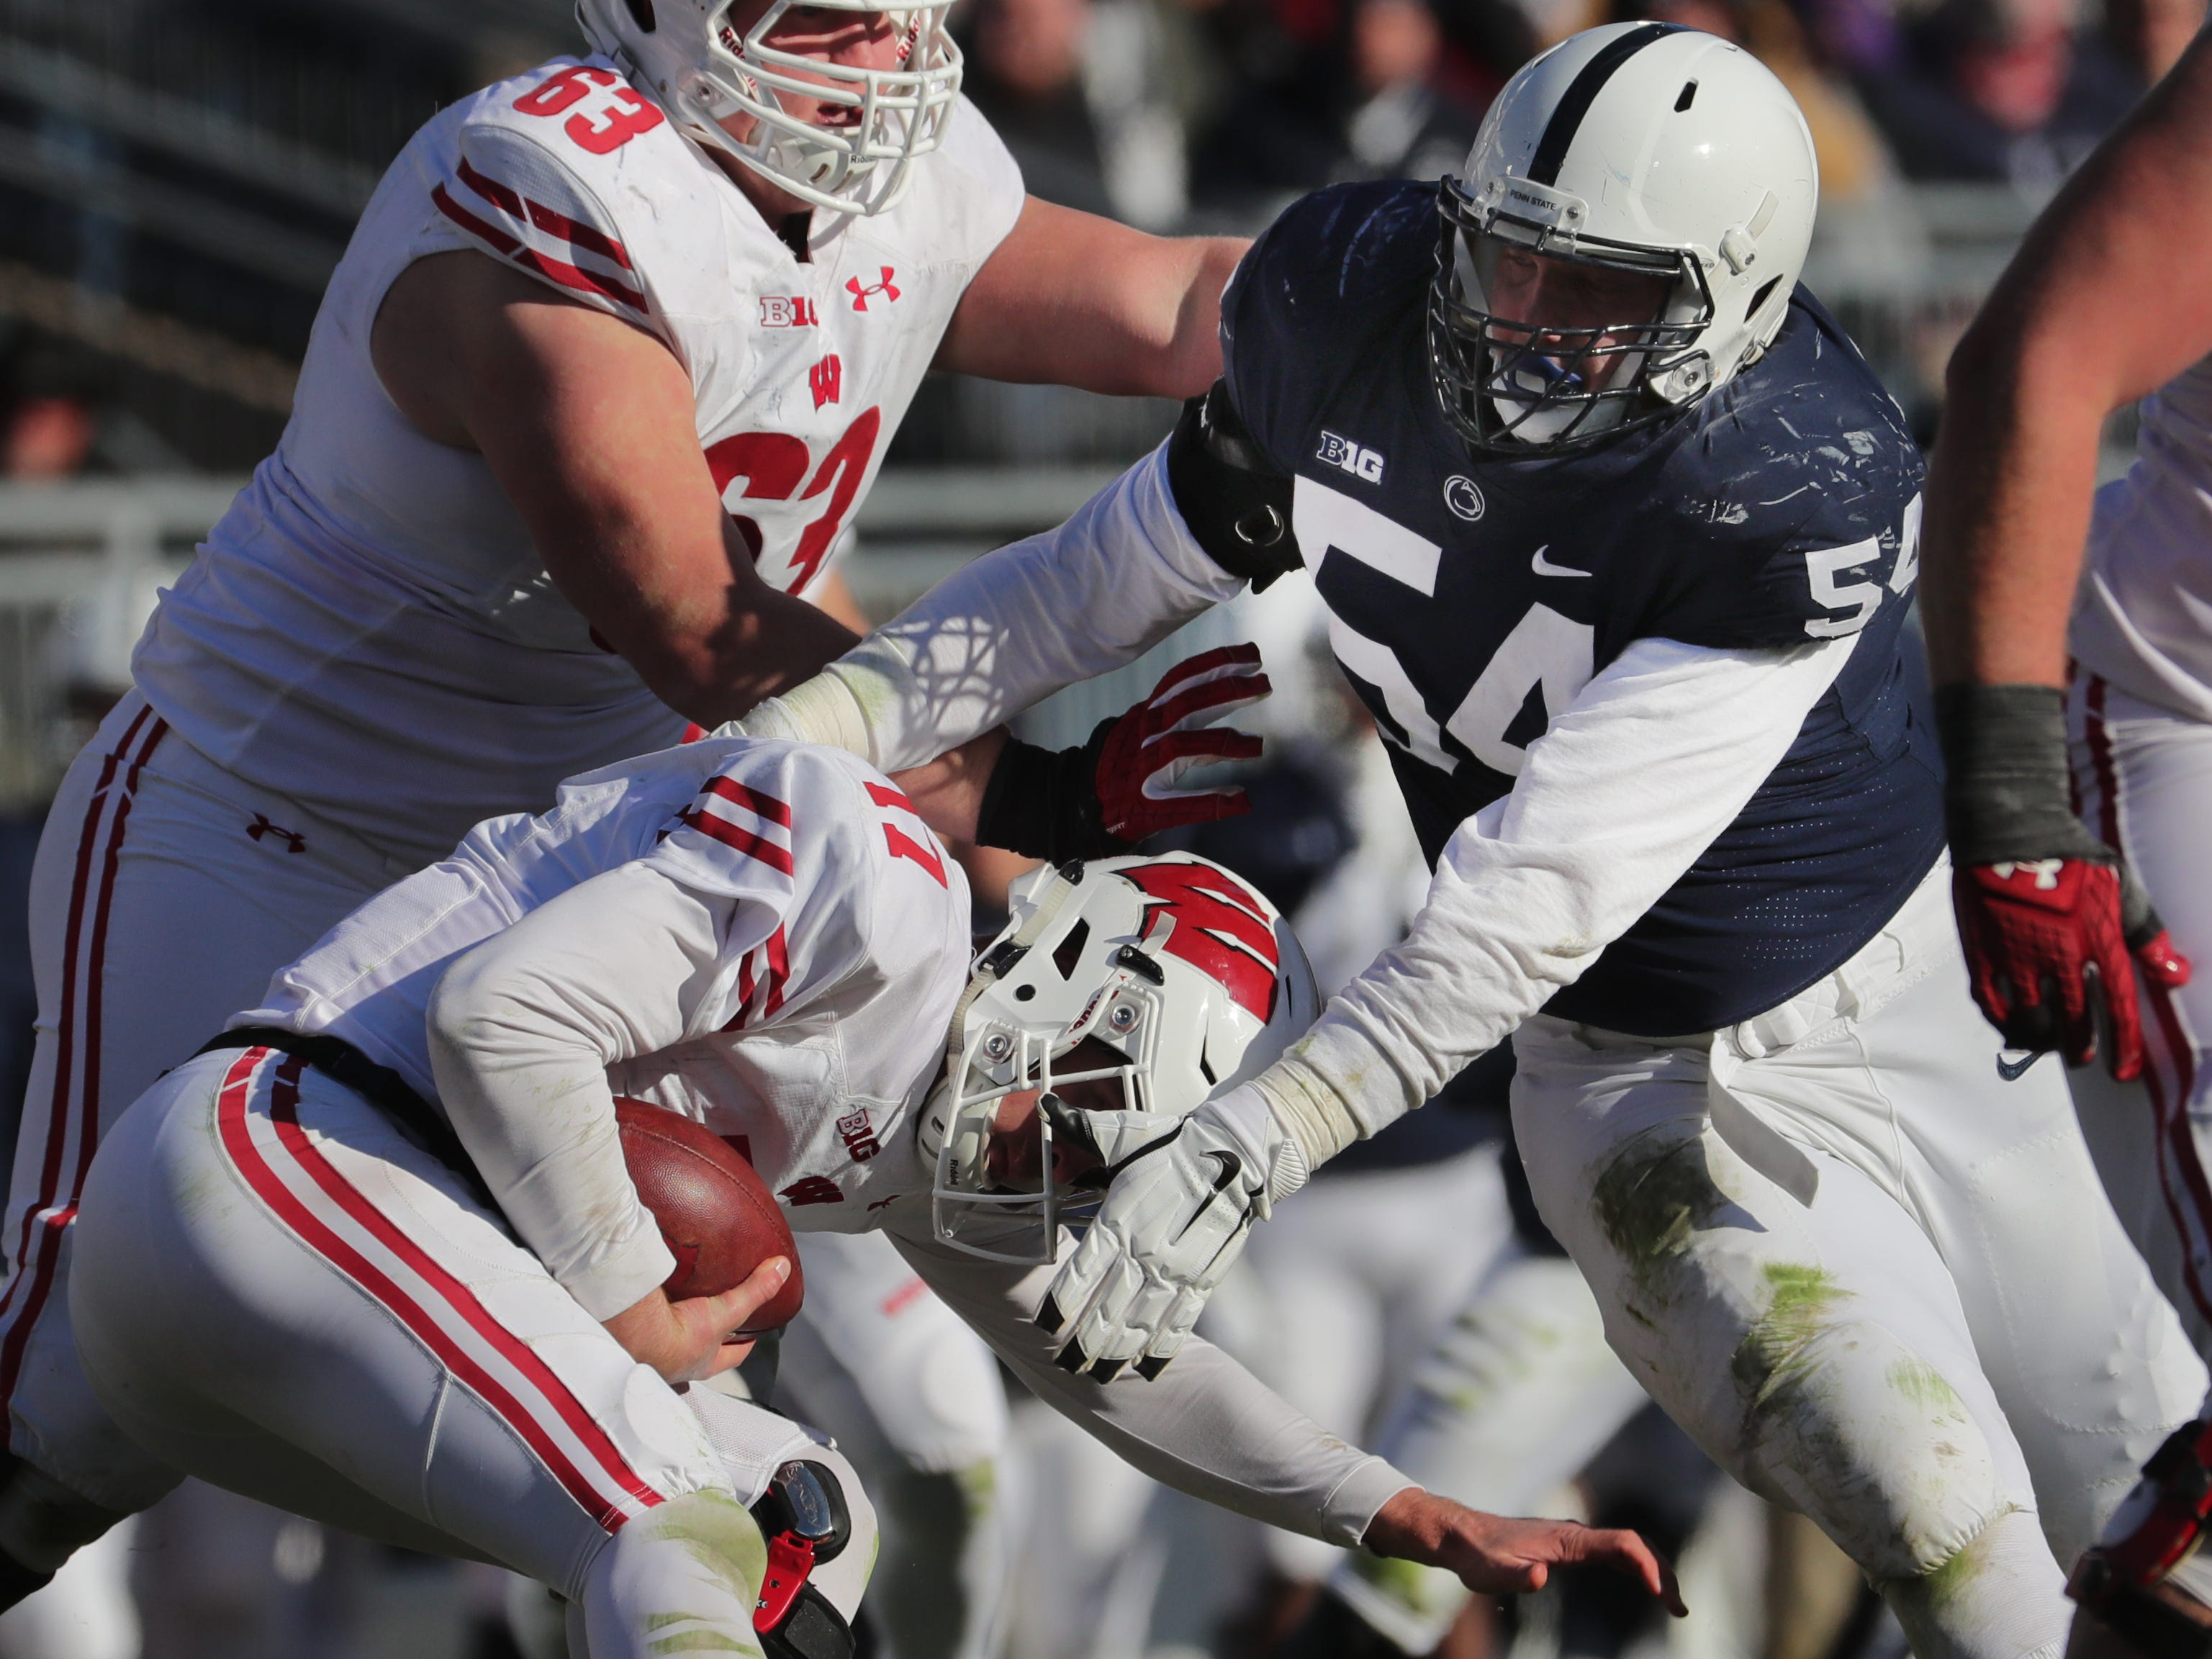 Penn State vs. Rutgers prediction: Defense ready to erase errors against Scarlet Knights